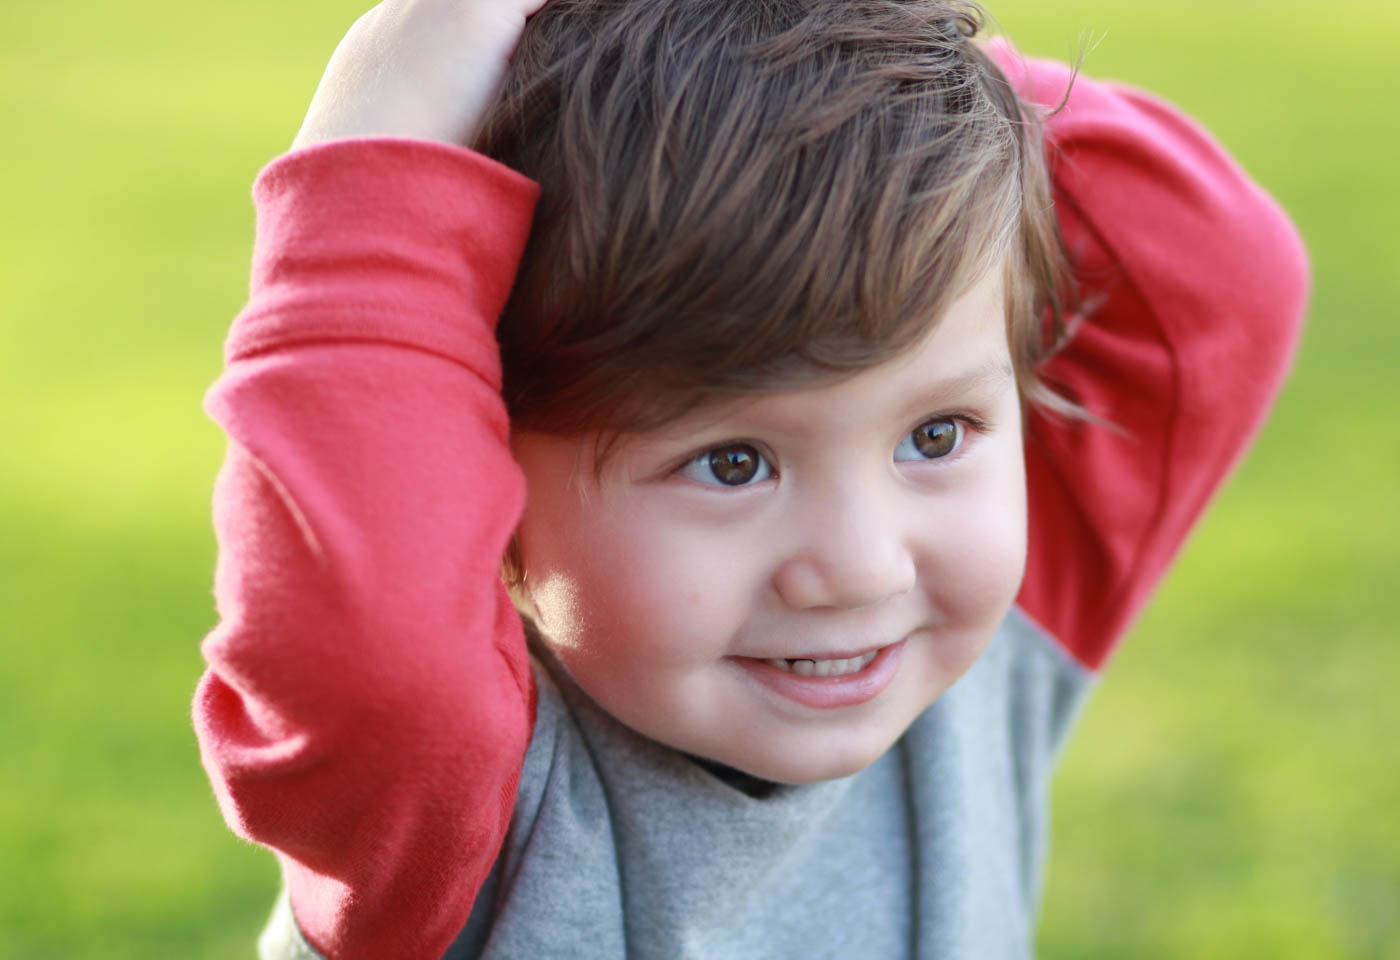 Smiling child taken with Canon EOS 1300D DSLR camera